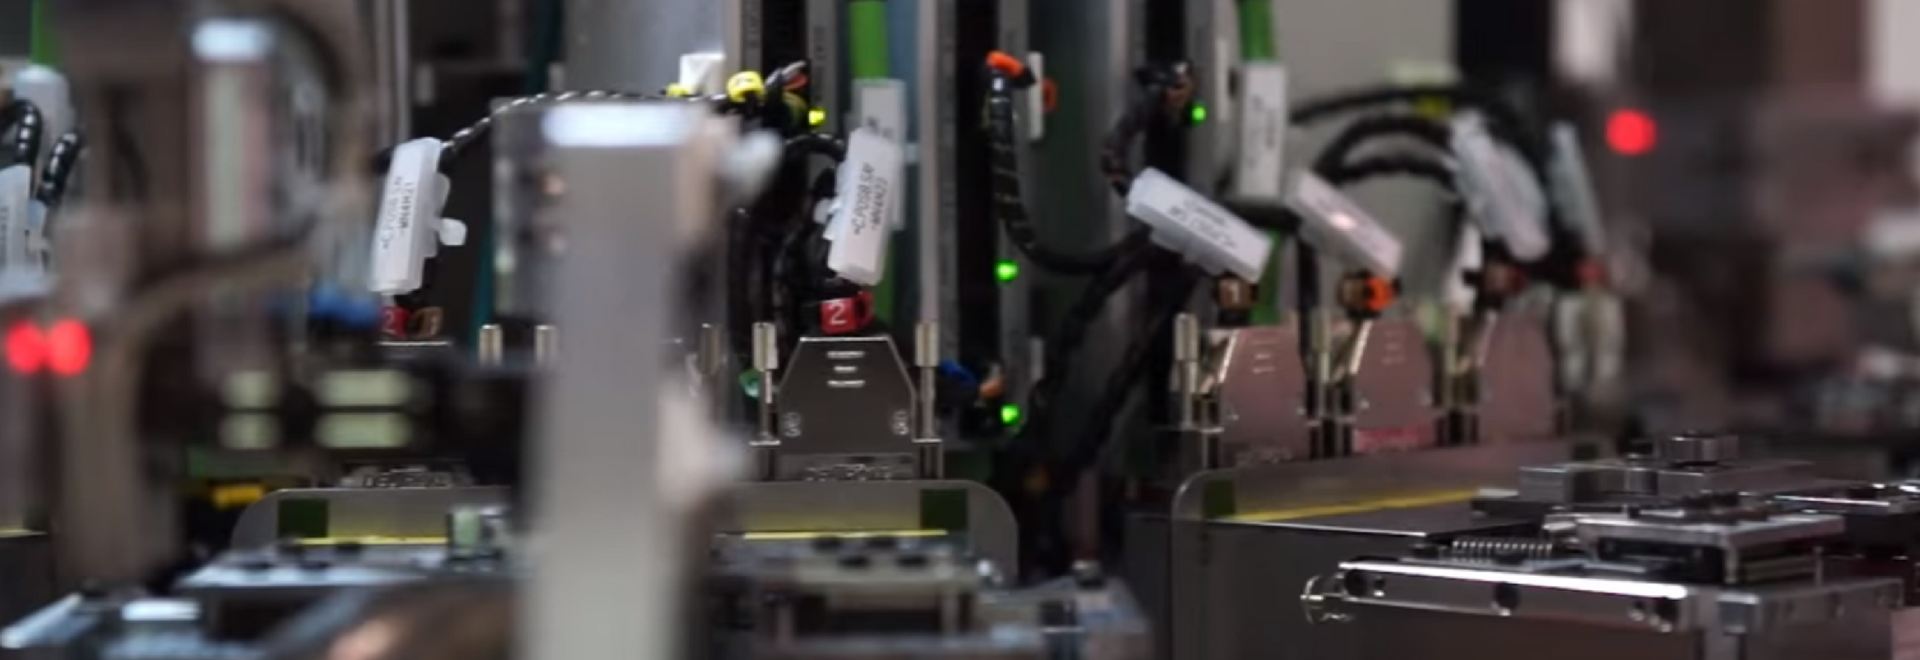 Your turnkey manufacturing equipment developed & built into one manufacturing solution